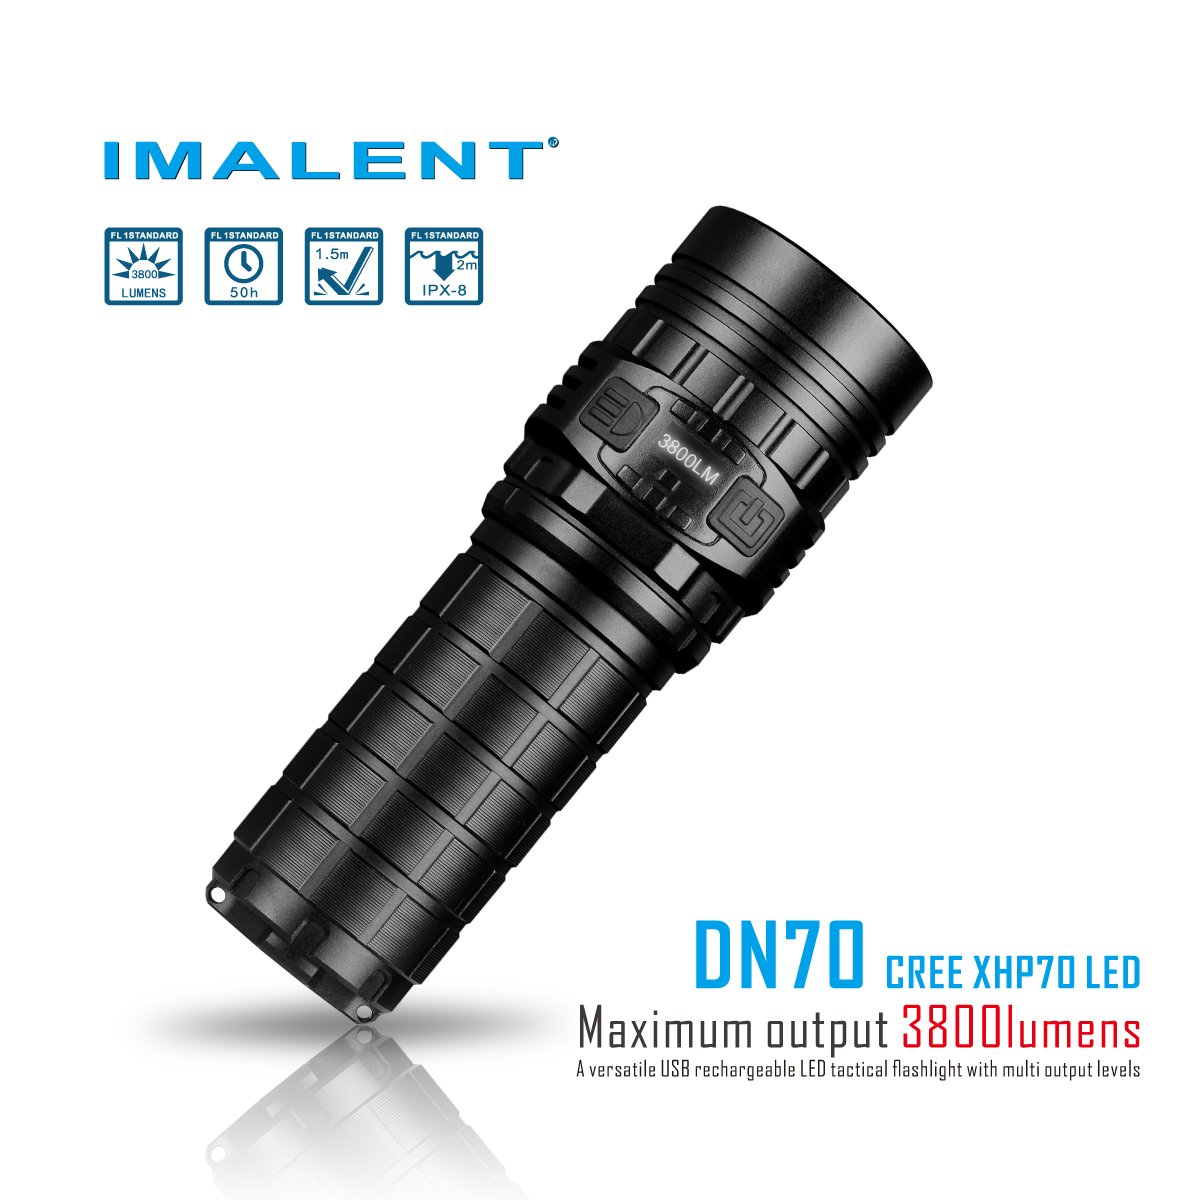 Imalent new DN70 USB rechargeable palm-sized LED flashlight 3800lumens searching light portable floody flashlight with CREE XHP70 LED by IMALENT (Image #1)